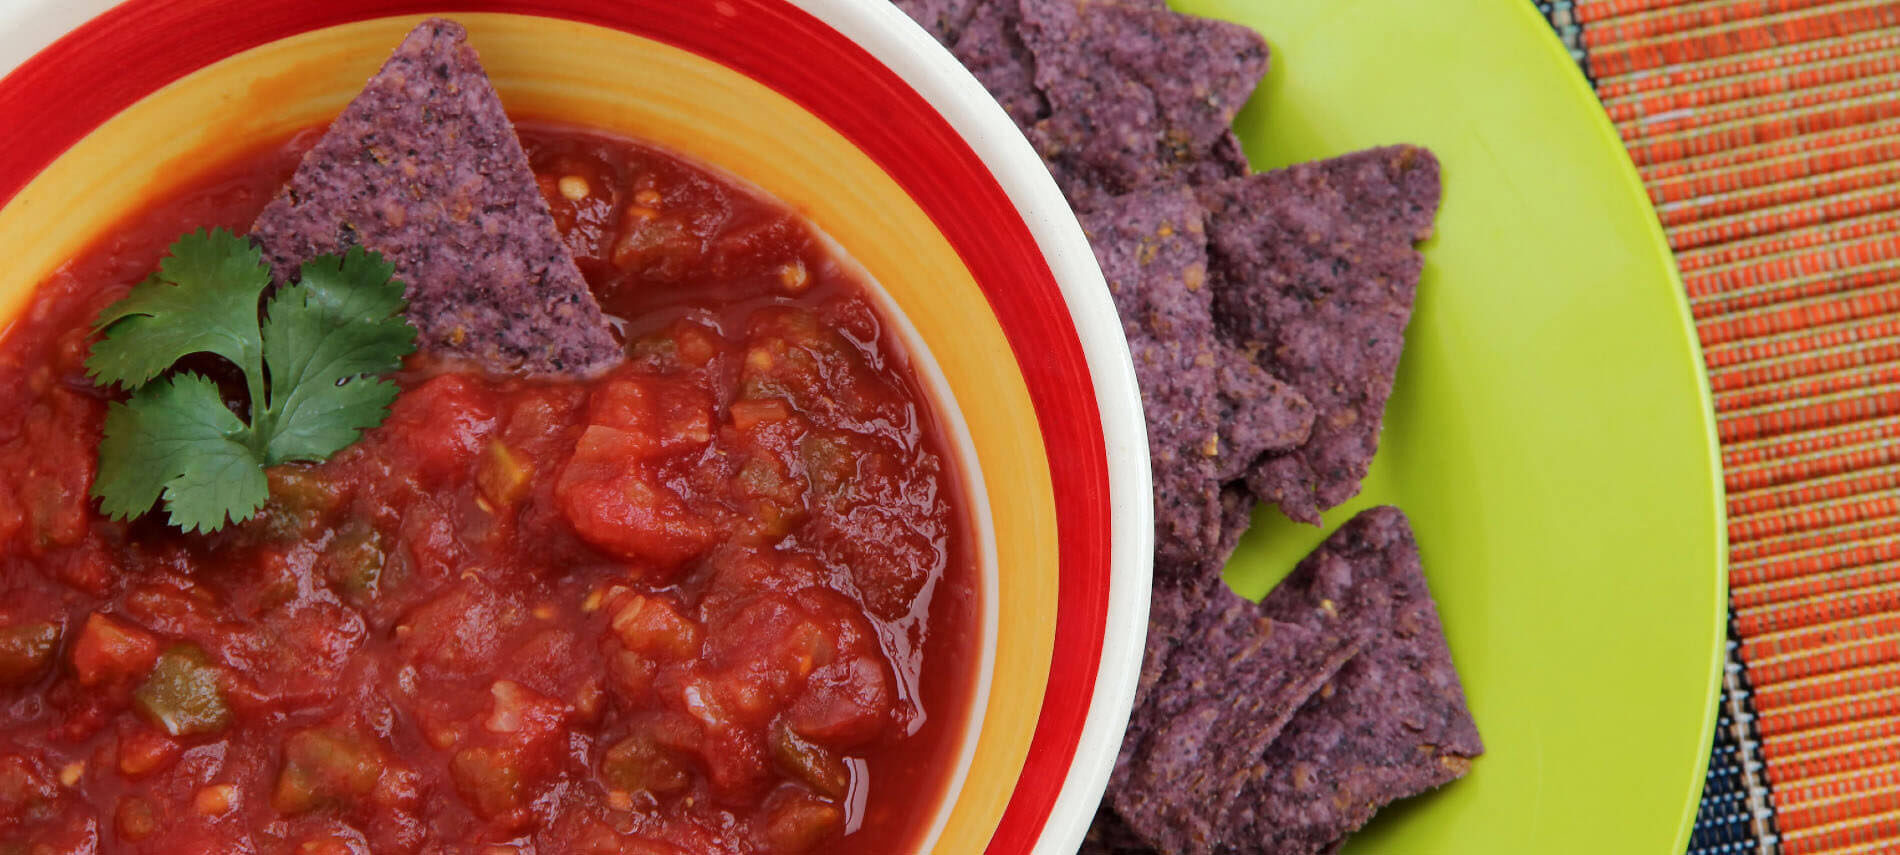 red salsa in a colorful bowl with purple tortilla chips on a green plate